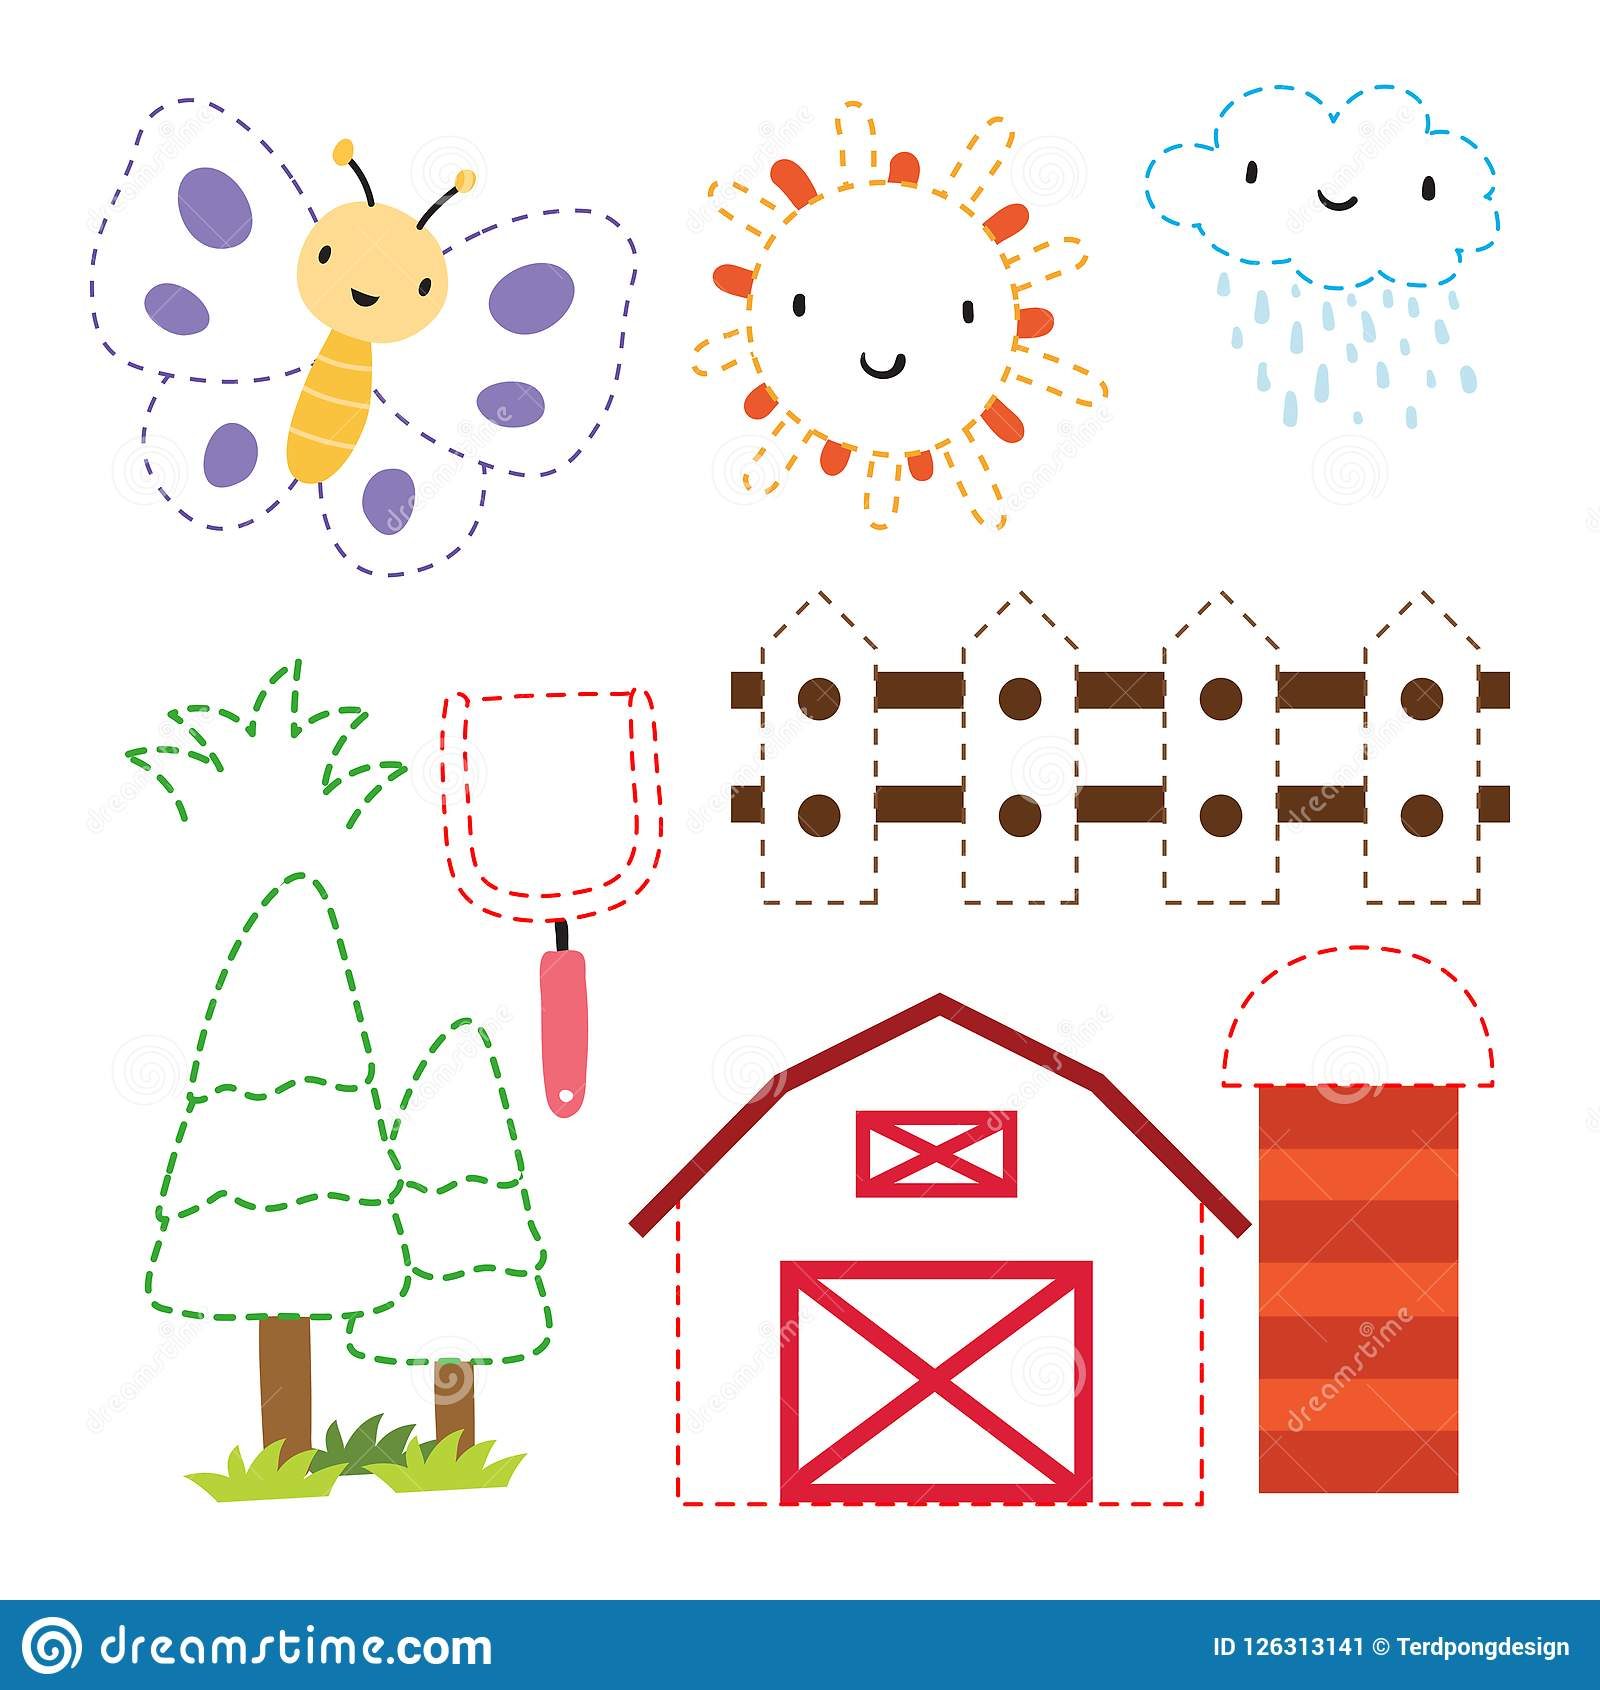 Worksheet Vector Design For Kid Stock Illustration